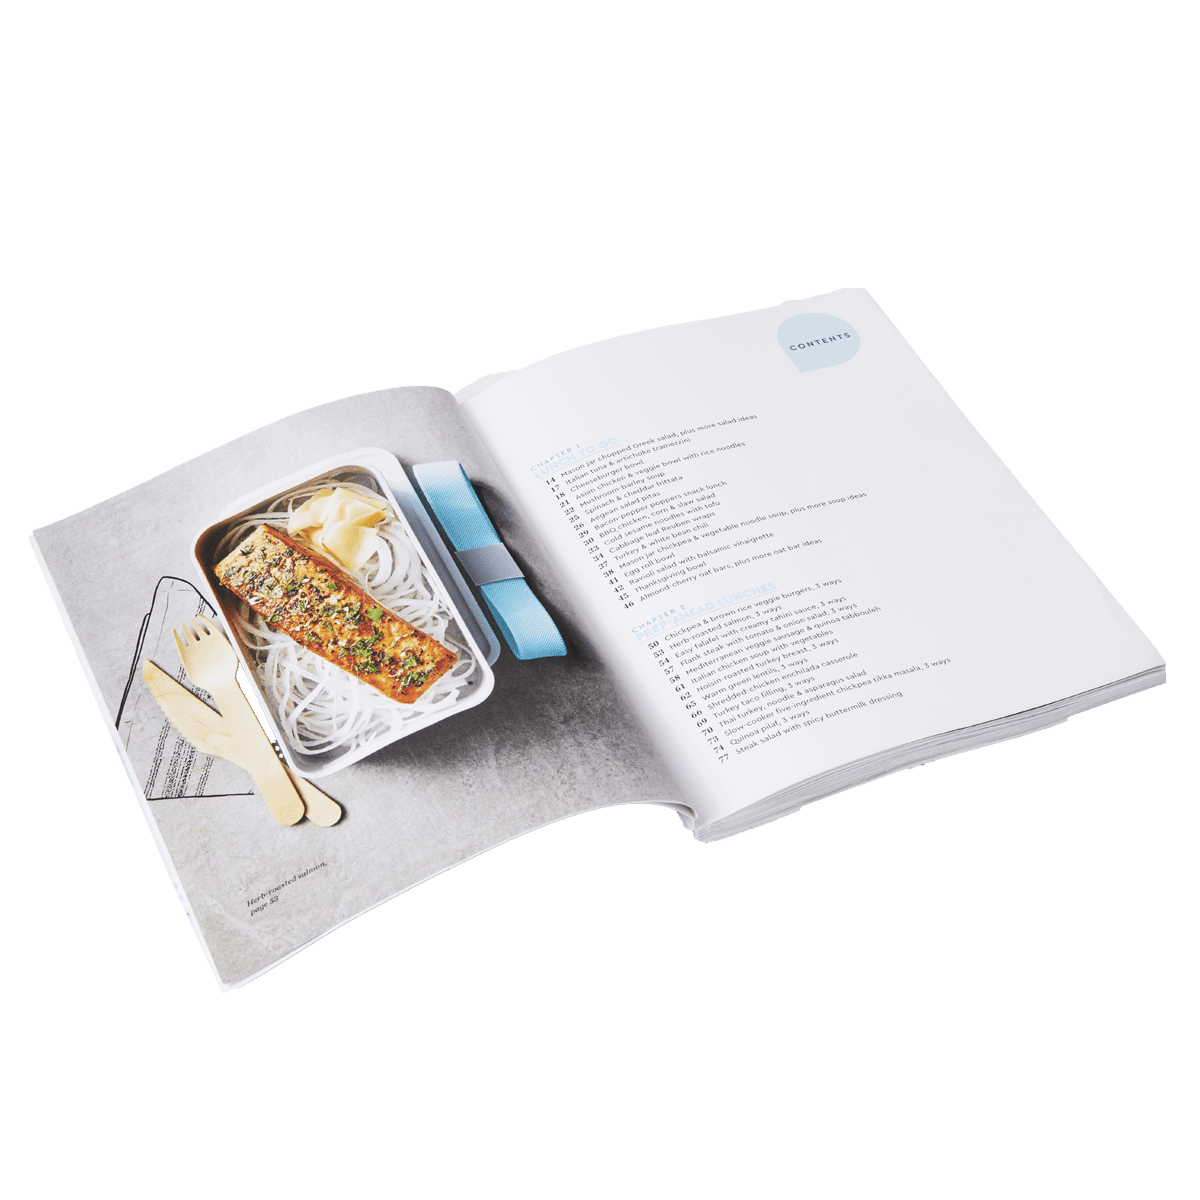 Lunch Plans Cookbook - page 3